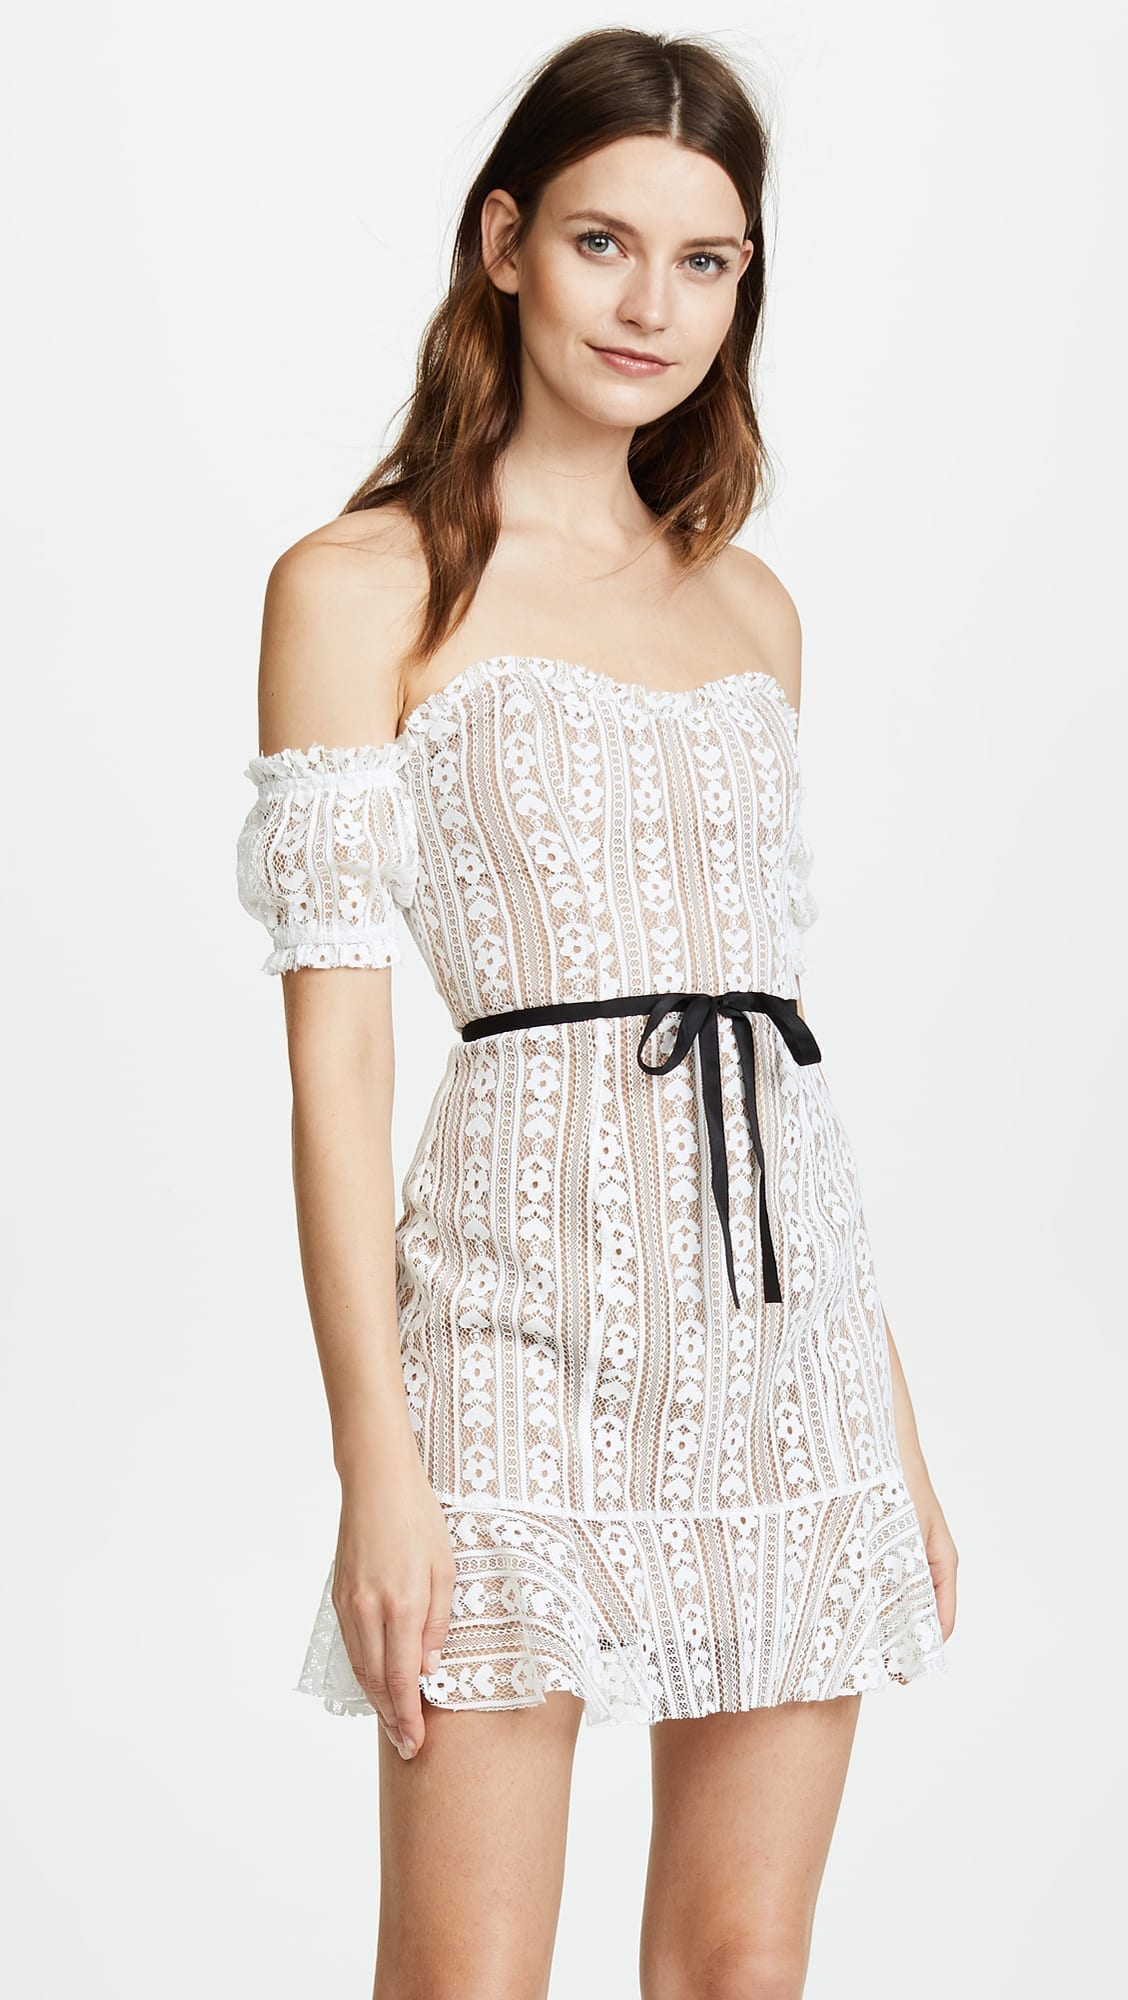 08a2f6e5219d FOR LOVE & LEMONS Dakota Lace Mini White Dress - We Select Dresses